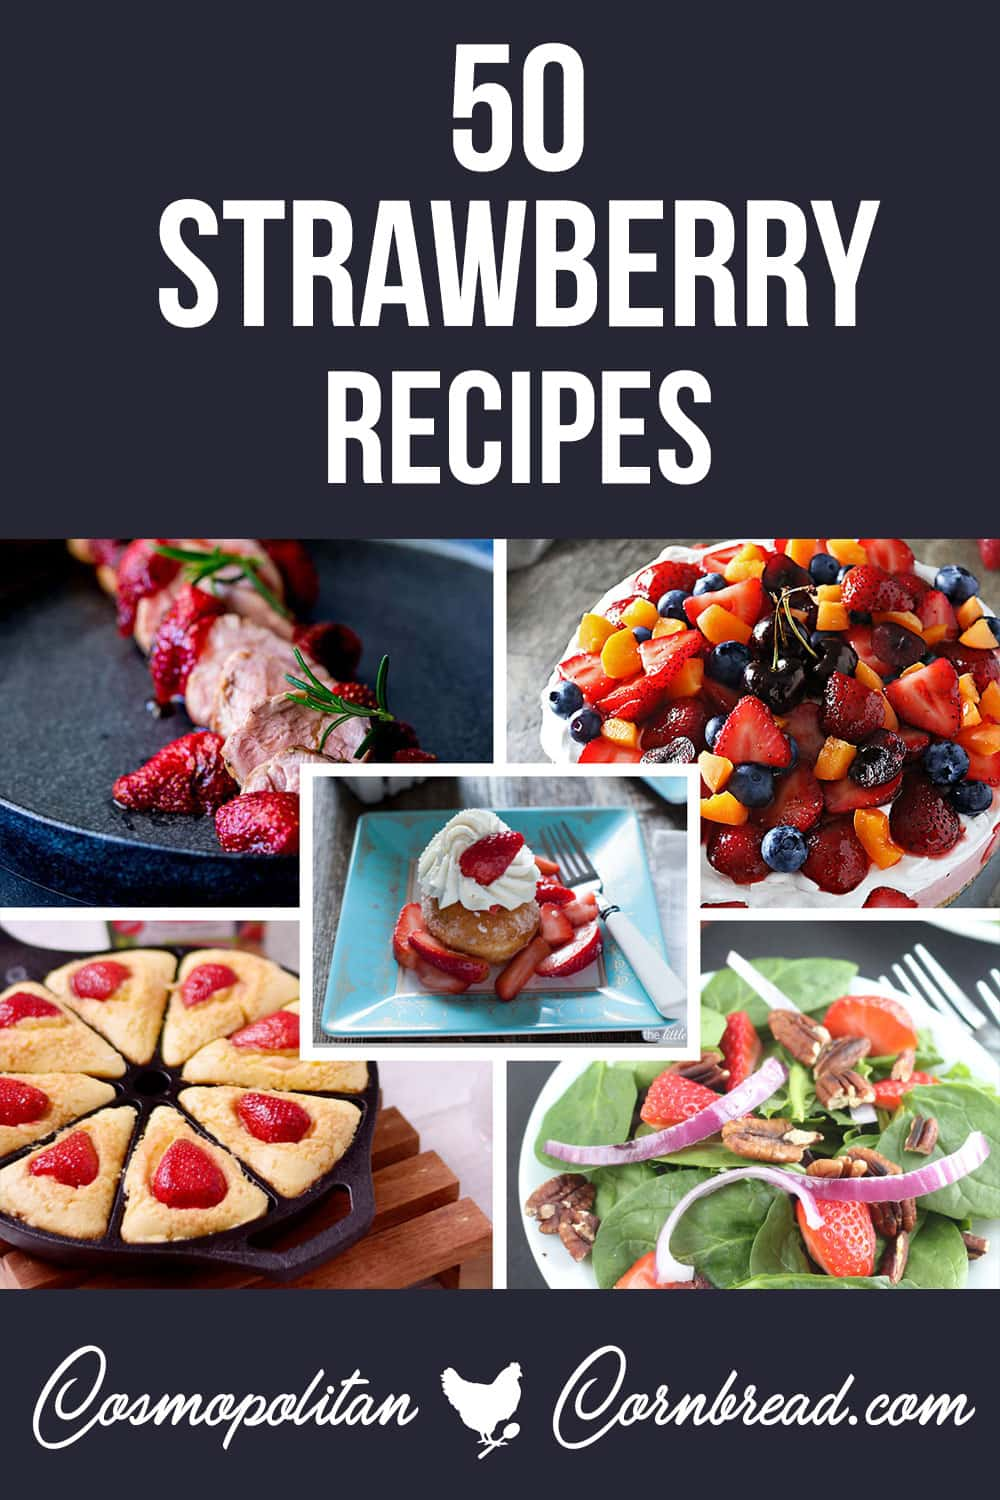 50 Strawberry Recipes - Find your favoritestrawberryrecipes in this collection, for baking, dipping or blending. Enjoy everything that strawberry season has to offer.